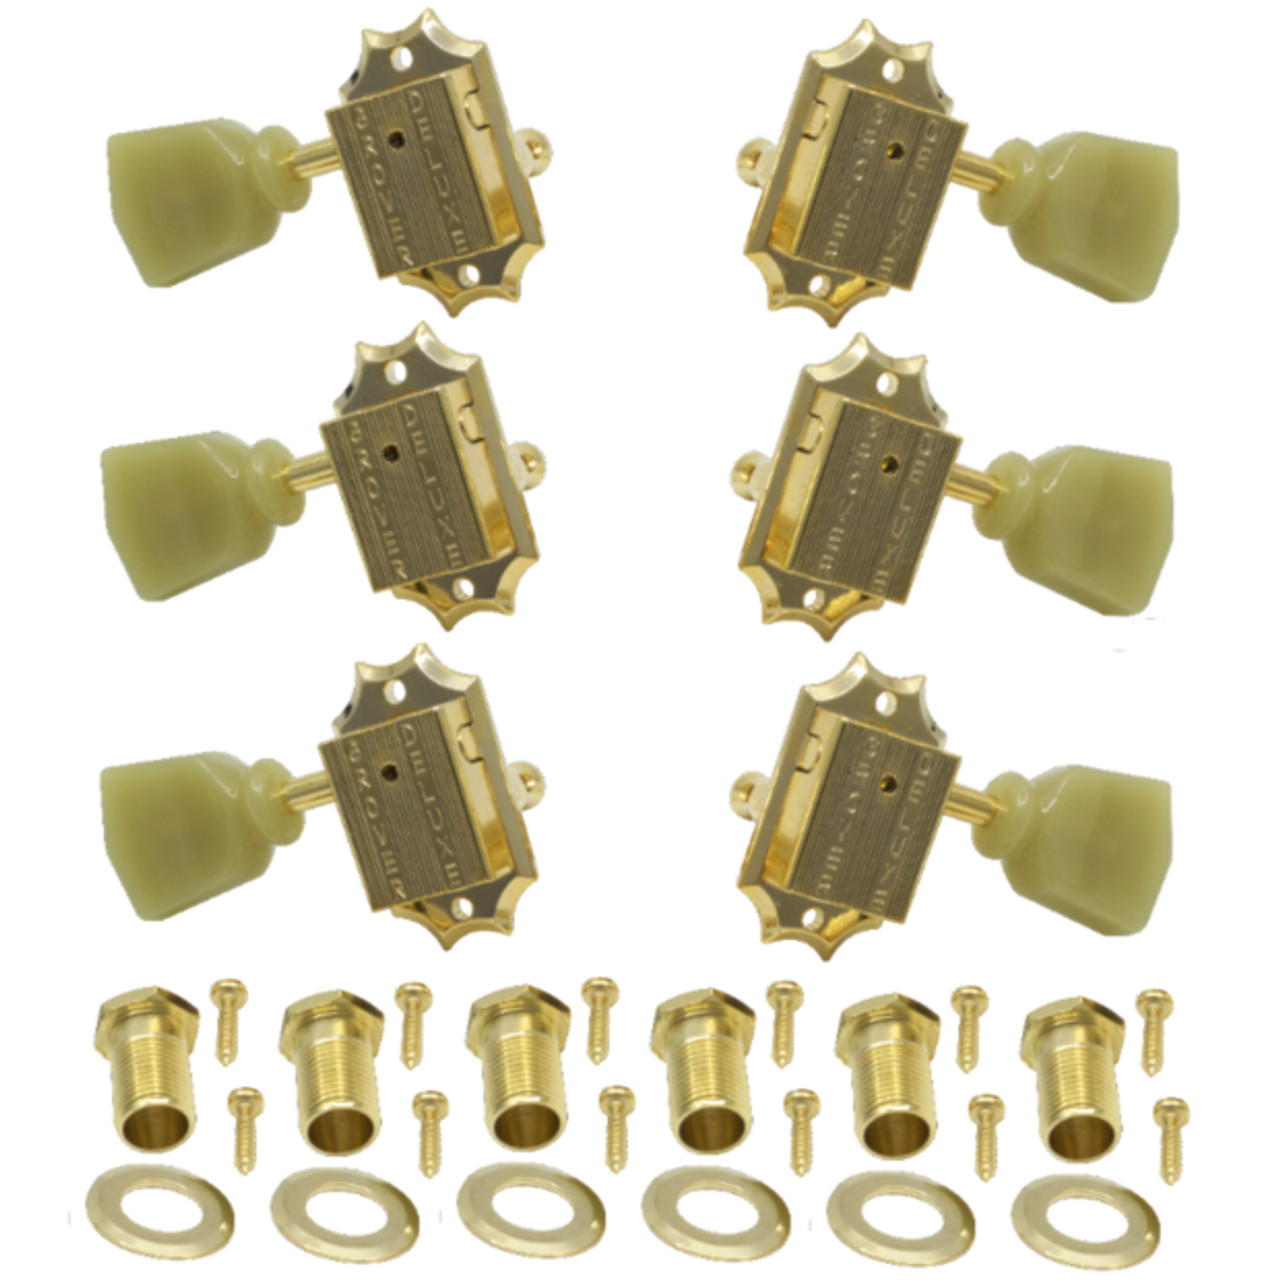 Grover Deluxe 135 Series Gibson Style 3x3 Guitar Tuning Keys-Gold